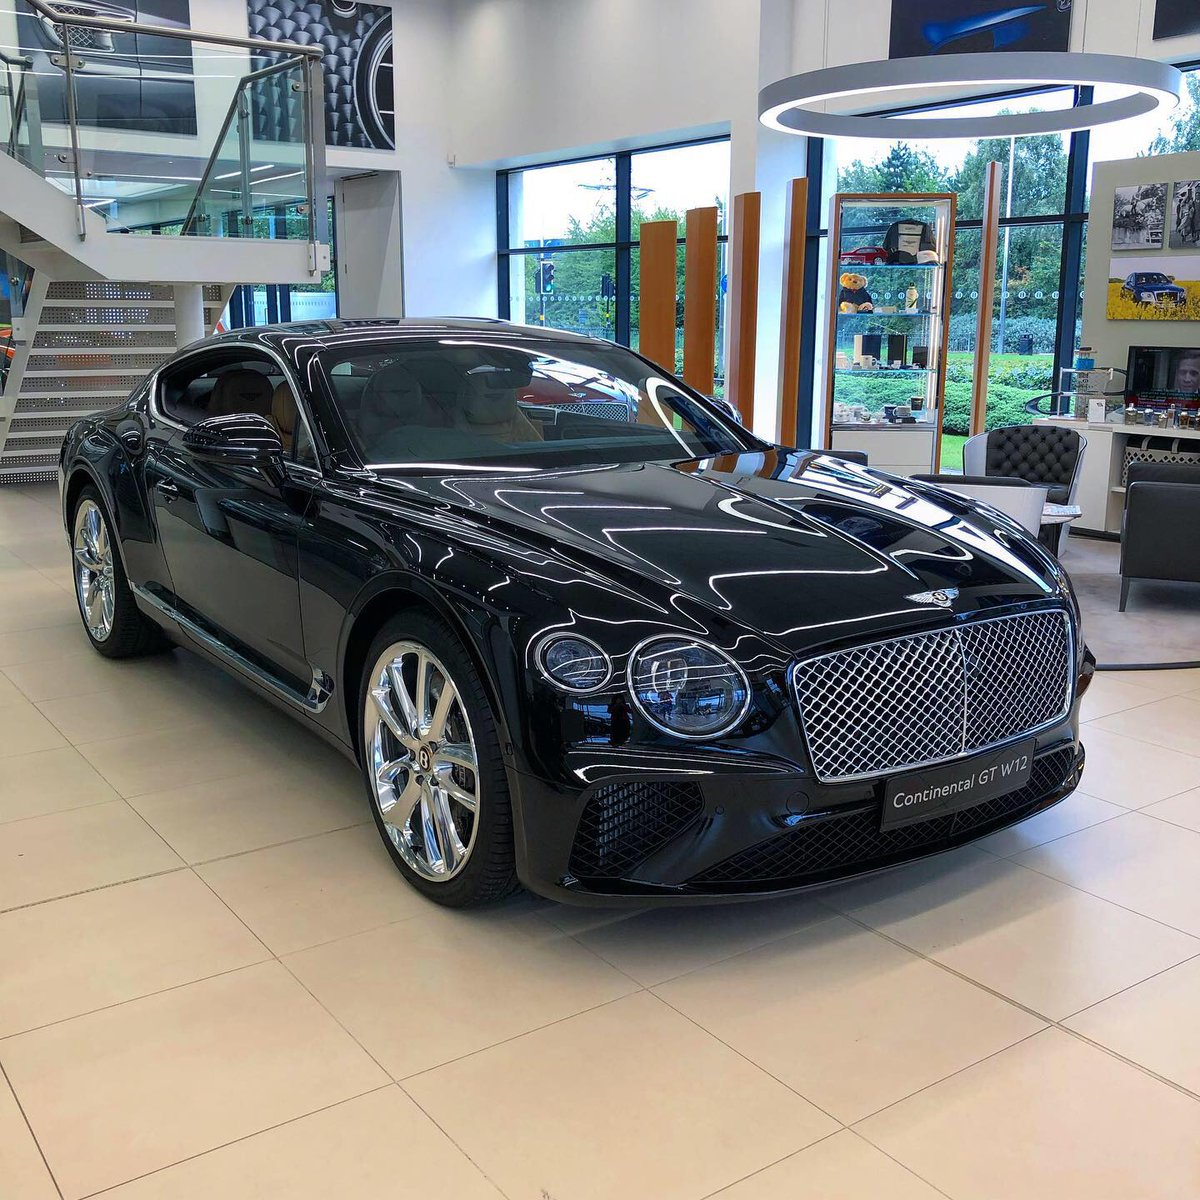 Bentley Birmingham On Twitter The Perfect Combination On The Continental Gt Exterior Finish Black Crystal Interior Finish Camel Bentley Hide For More Information Please Contact The Sales Team On 0121 238 1618